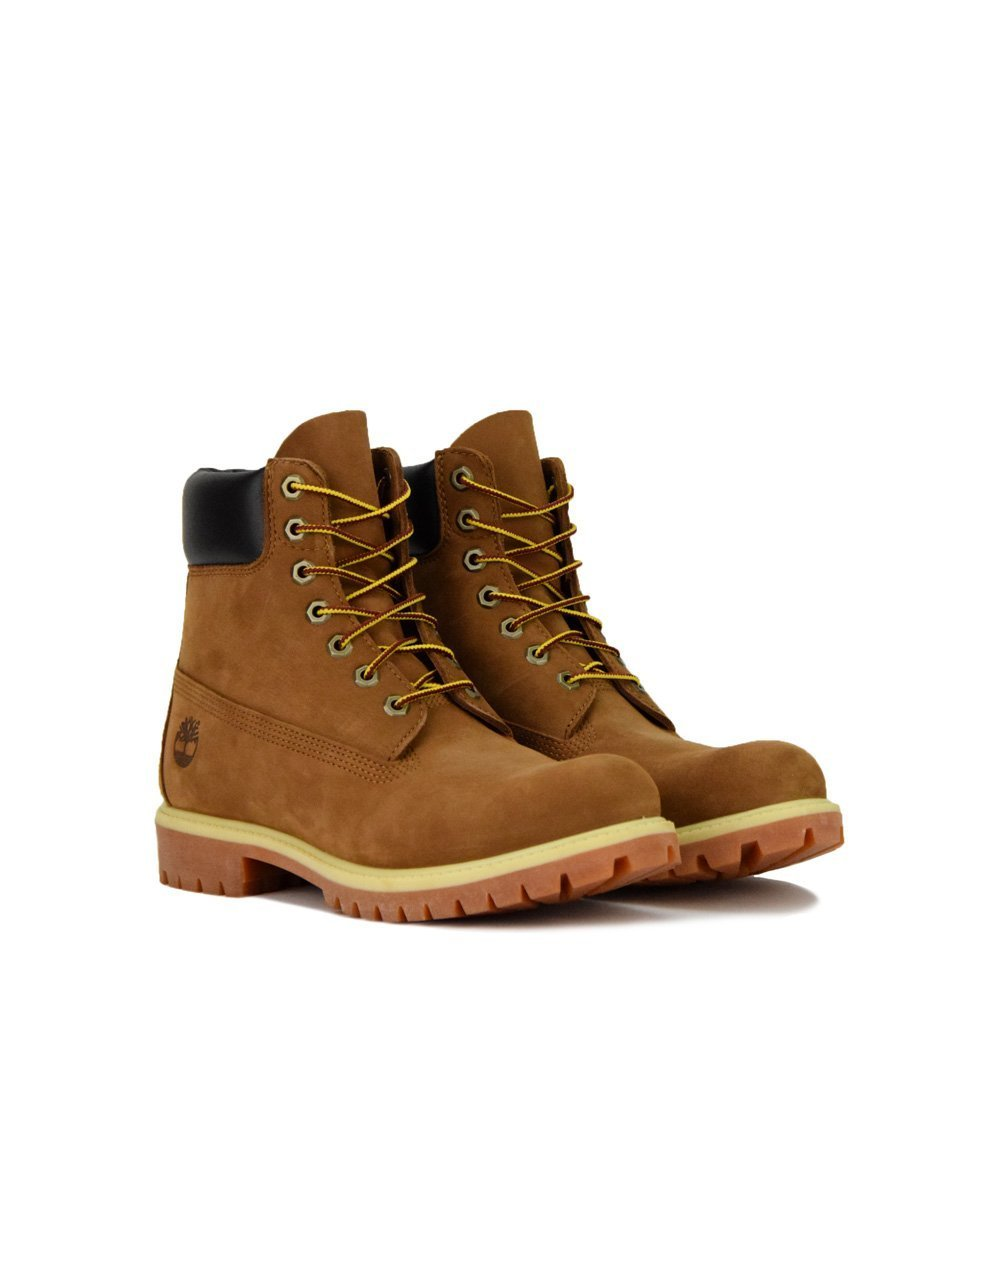 Timberland Premium 6 In Waterproof Boot (TB072066 827) Rust Nubuck